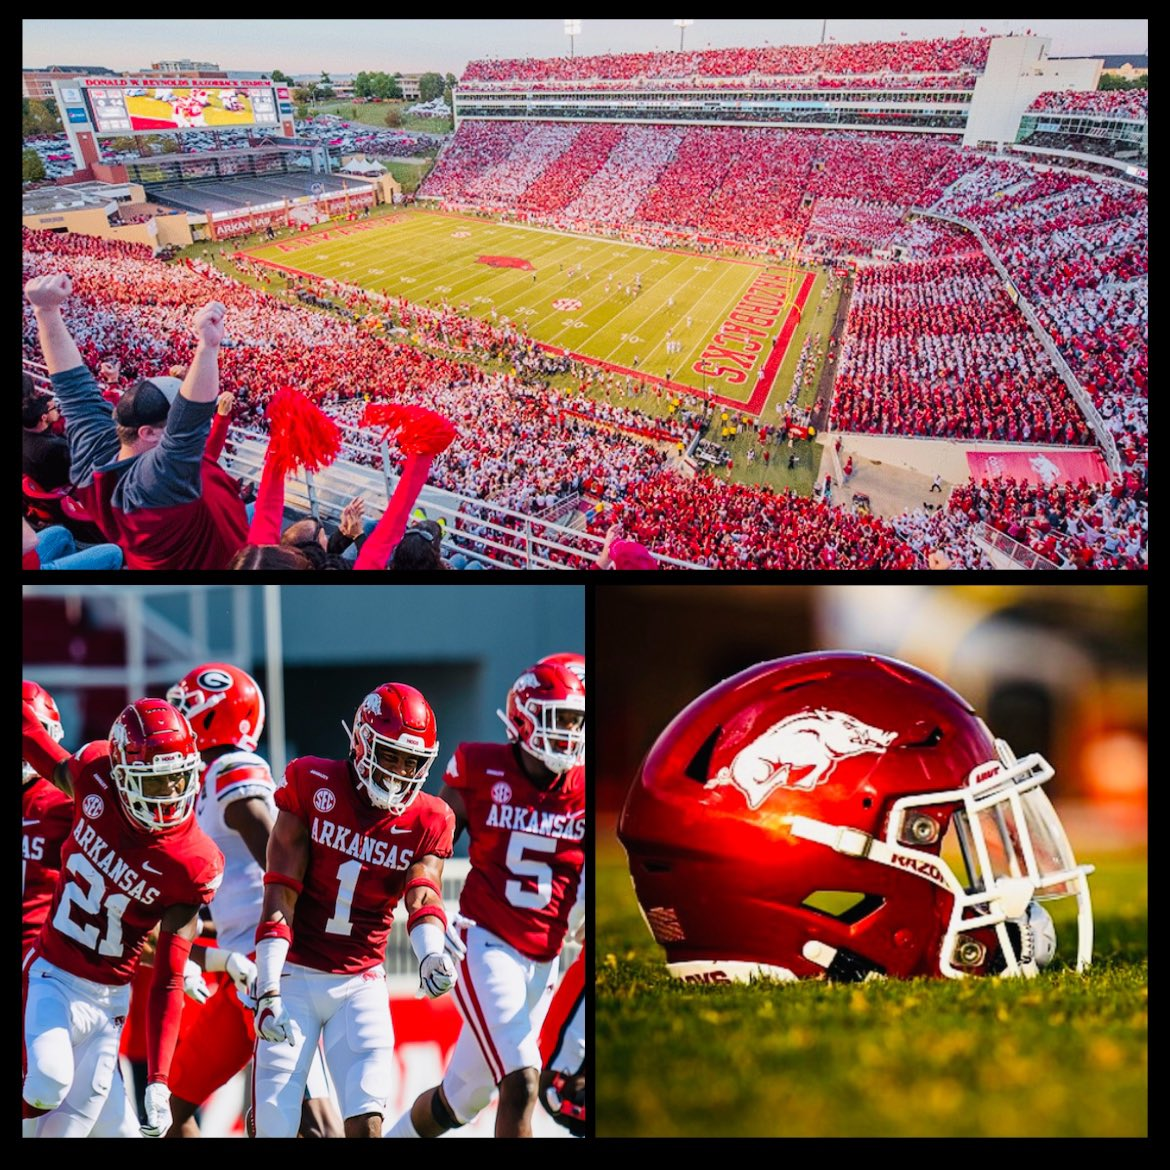 After a great conversation with @CoachCarterArk I am Blessed and Honored to say I have earned an athletic scholarship offer from The University Of Arkansas 🐗❤️! #WPS @BamPerformance @DannyWest247 @CoachStew_TTR @_Recruit_Temple @samspiegs @samspiegs @CJVogel_TFB @MikeRoach247 https://t.co/HeCOYmqmML